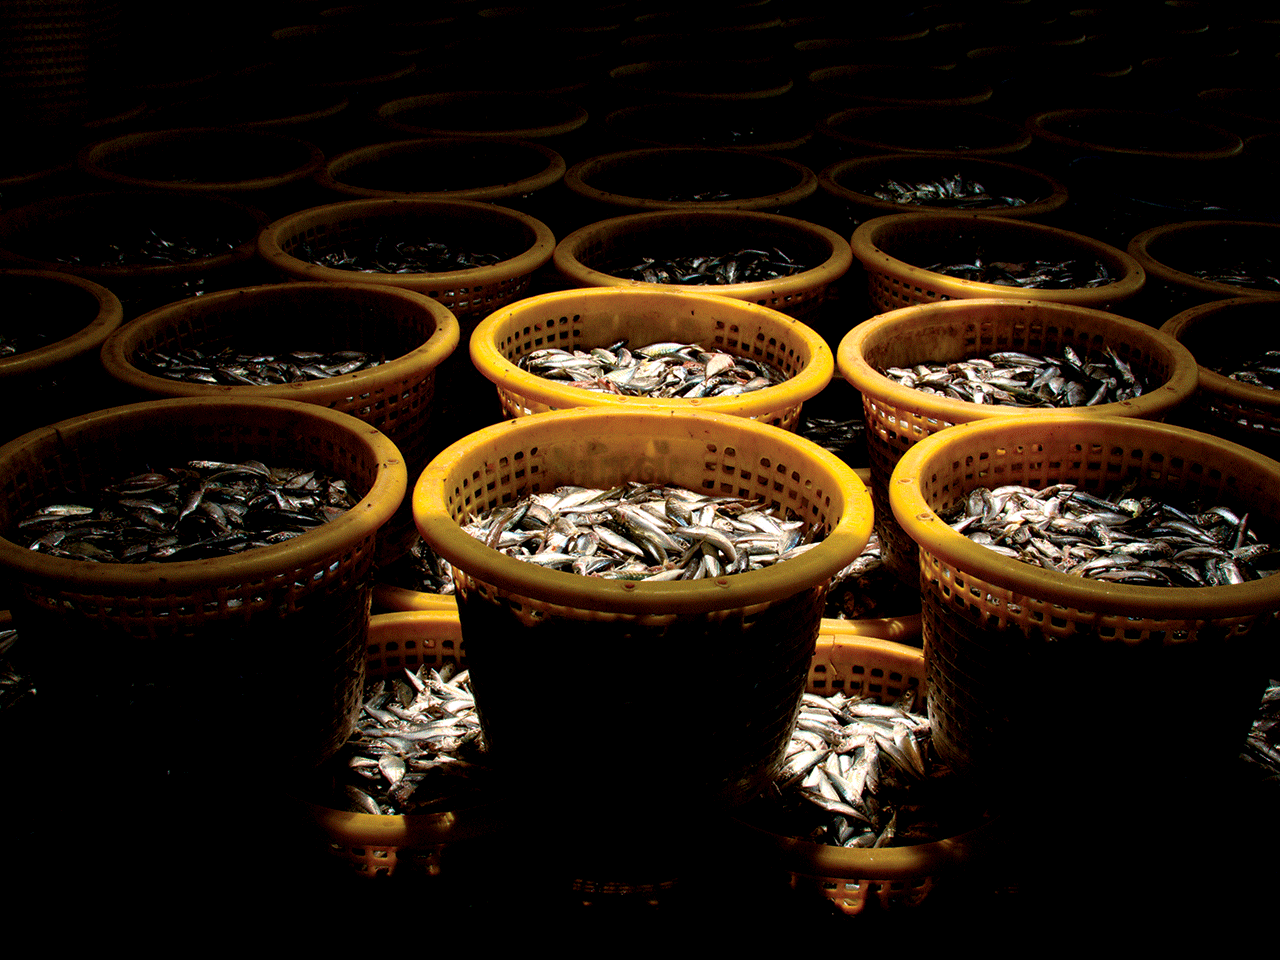 FISH IN BARRELS